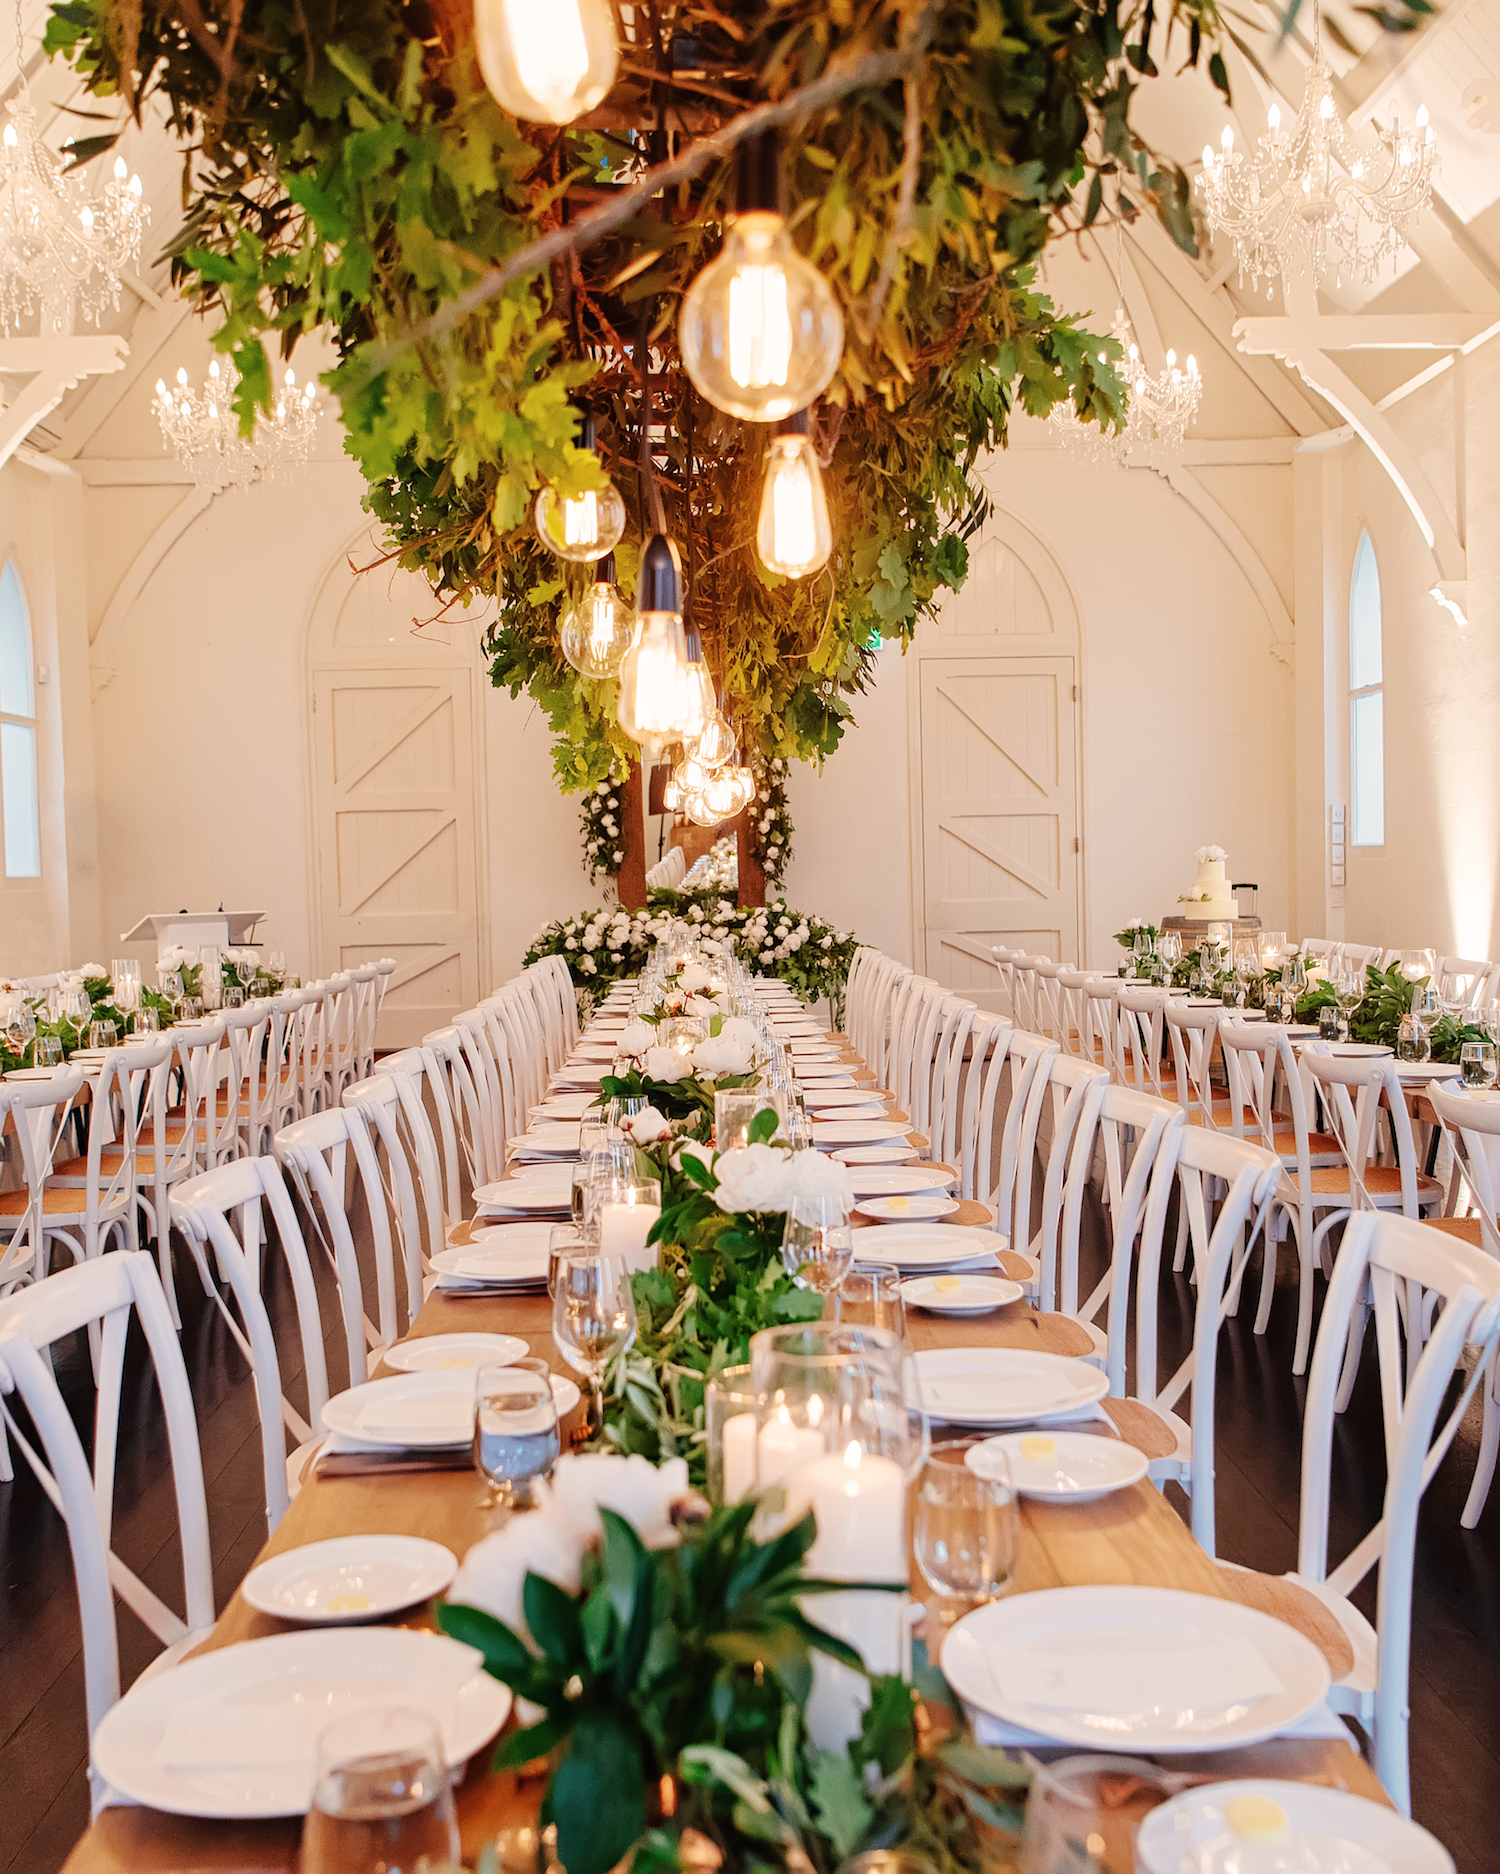 White + White Weddings and Events Brisbane Sydney Melbourne Danielle White Corporate Events Weddings